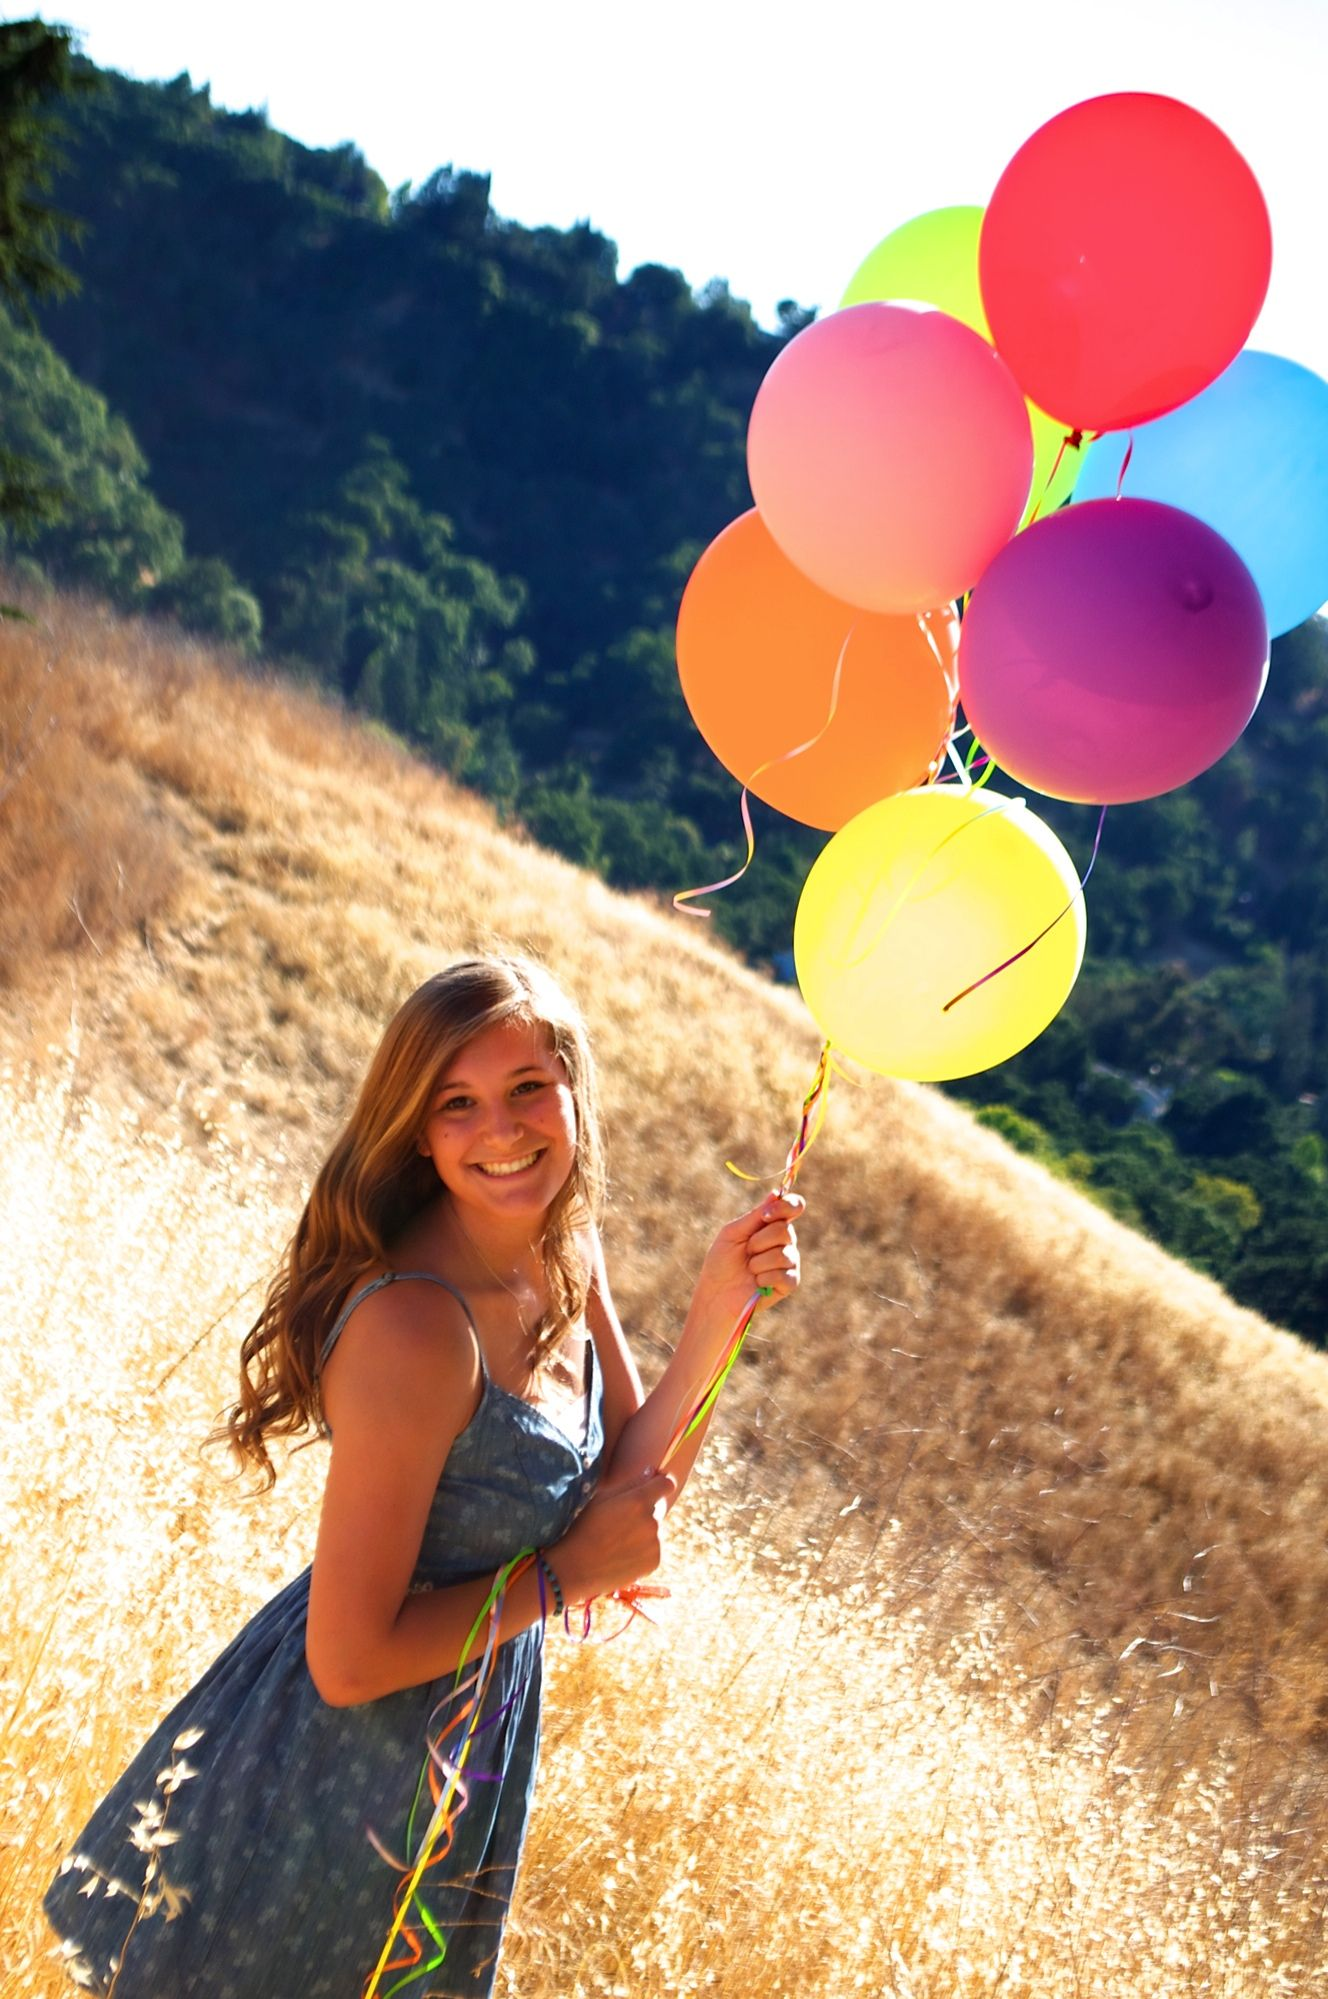 Photoshoot with balloons